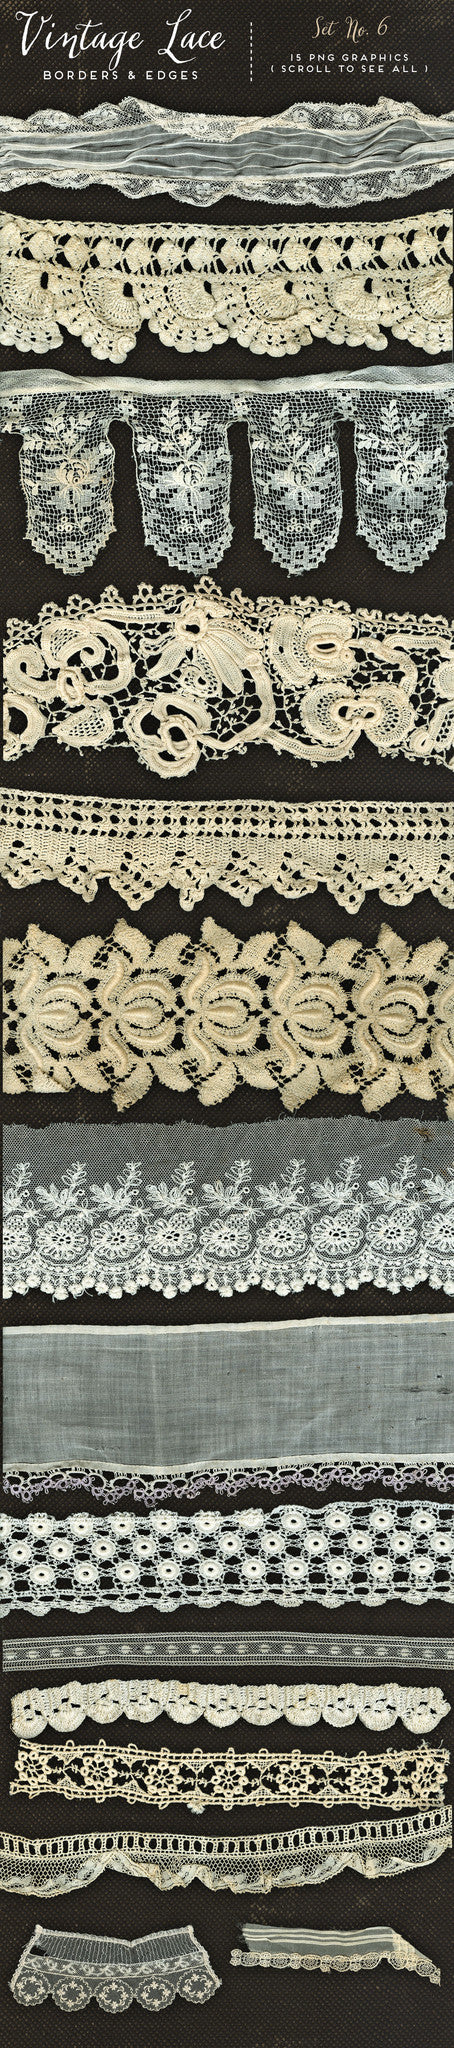 Vintage Lace Borders & Edges No. 6